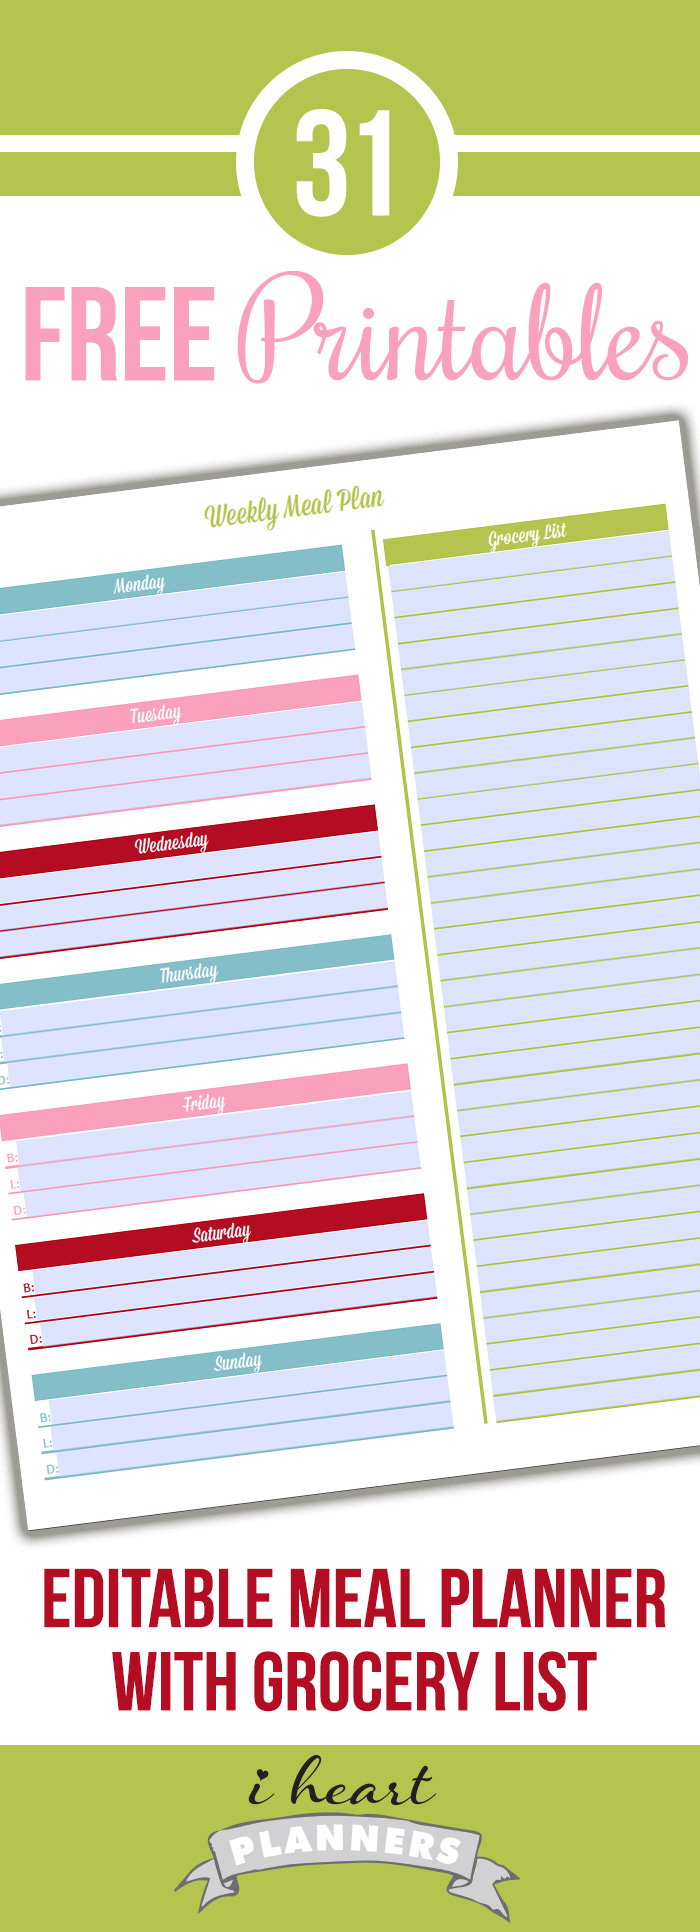 day 20 editable meal planner with grocery list i heart planners